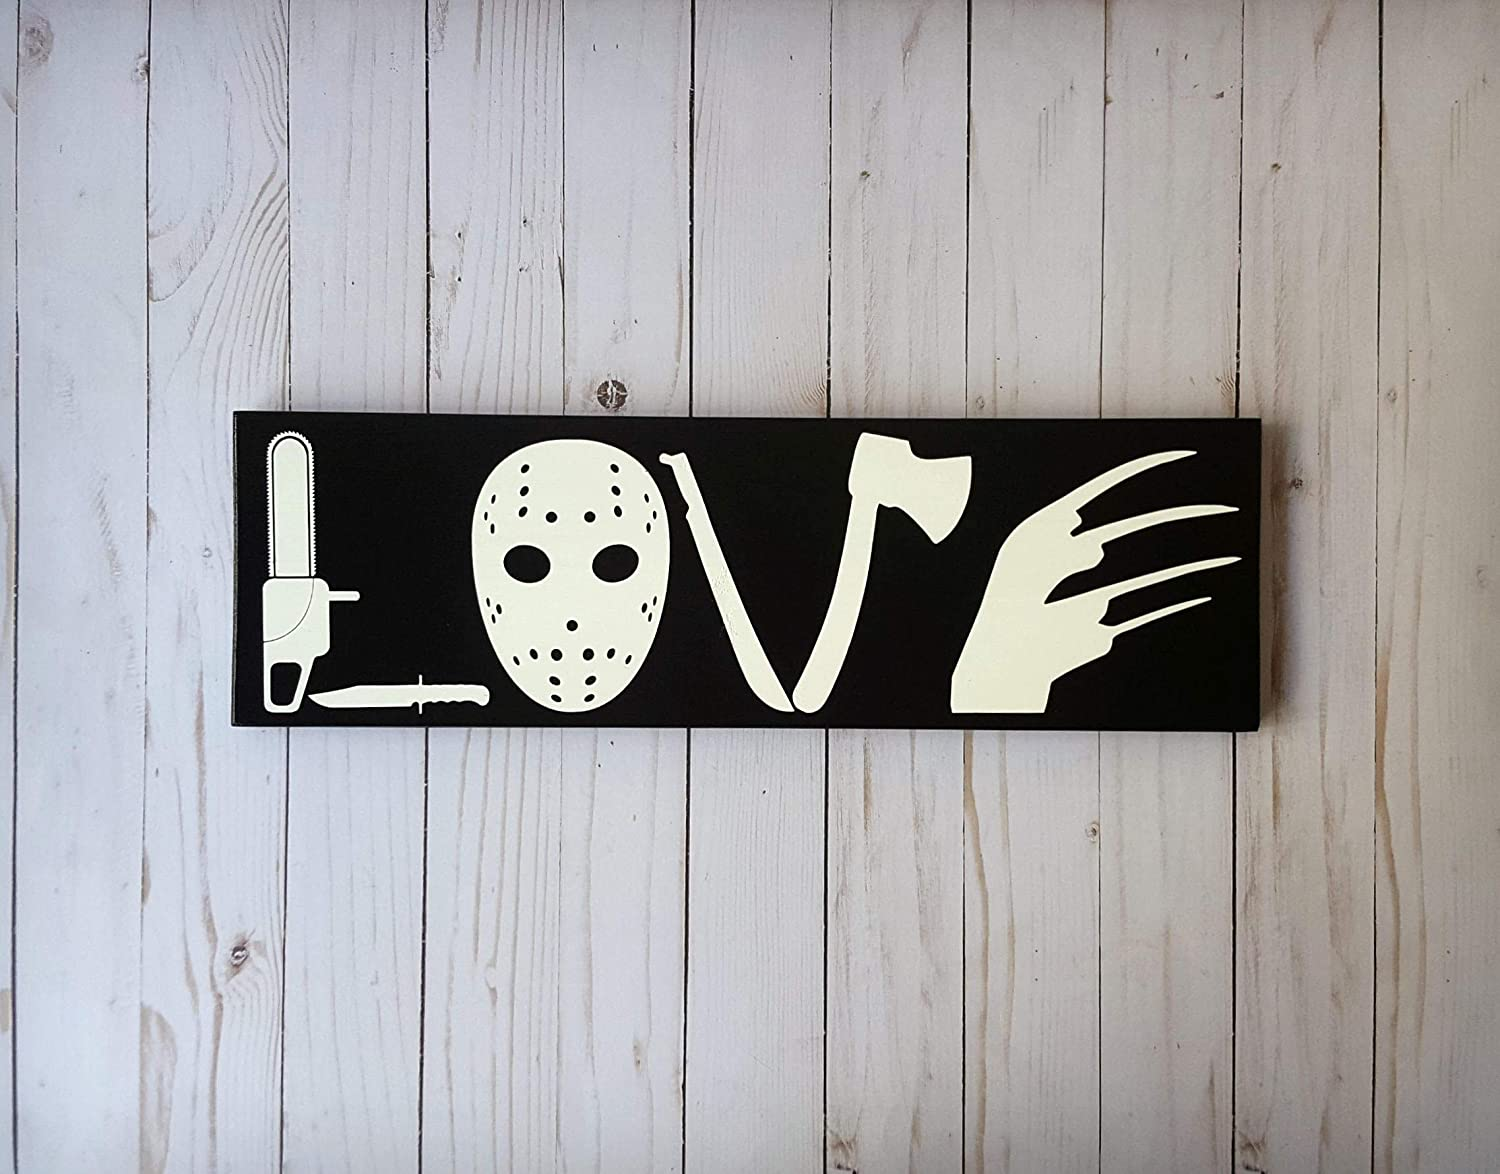 wonbye Wooden Signs with Sayings, Horror Movie Love Wooden Sign, I Love Horror, Horror Movie Sign, Horror Love Sign, Scary Movie, Scary Movie Love, I Love Scary Movies Sign